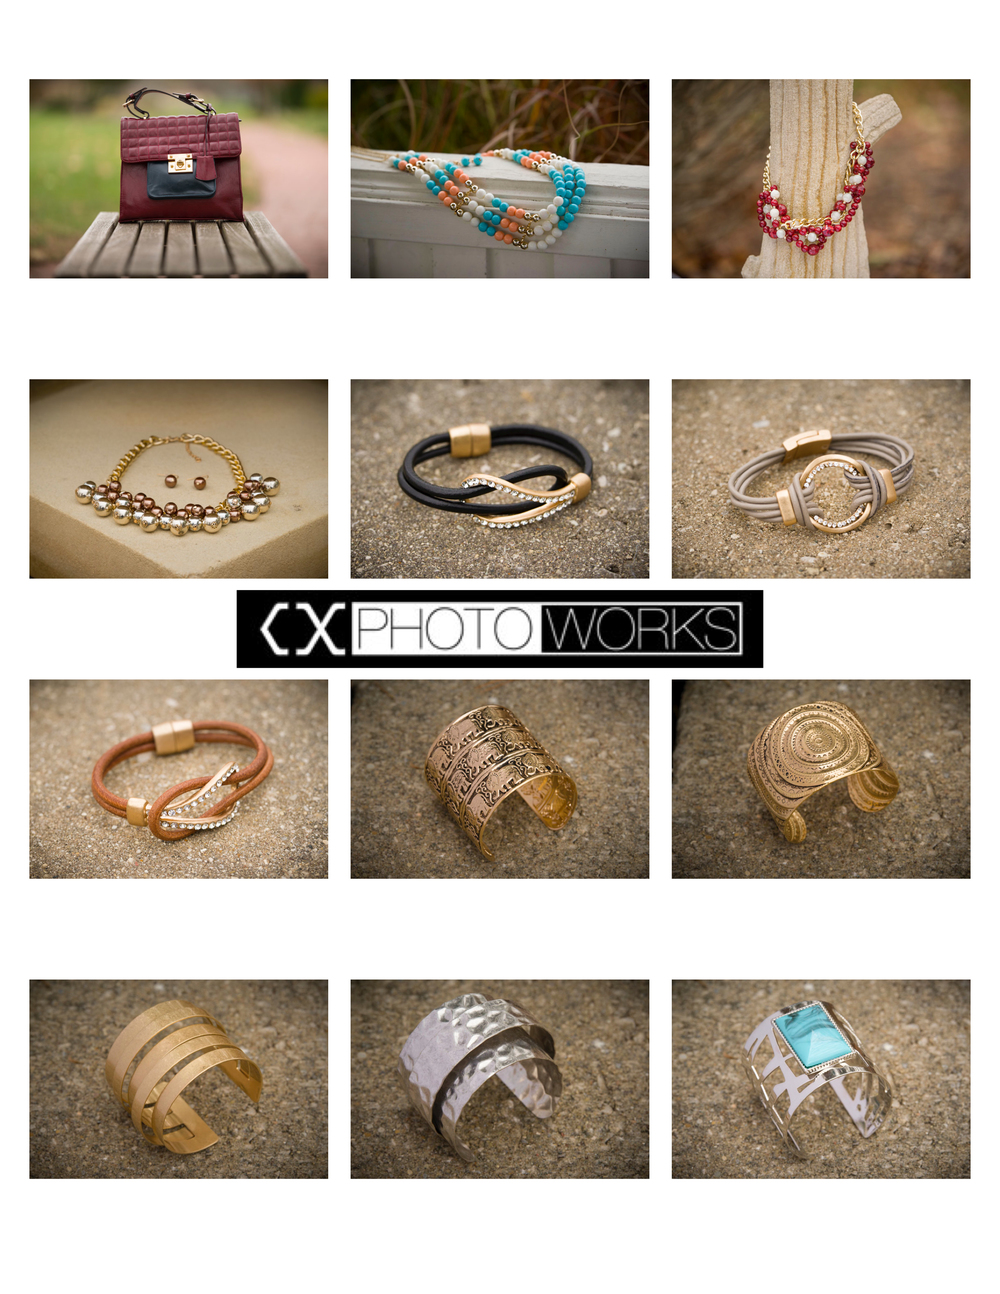 Fashion Accessories:  Jewelry & Handbags (Contact Sheet 2)